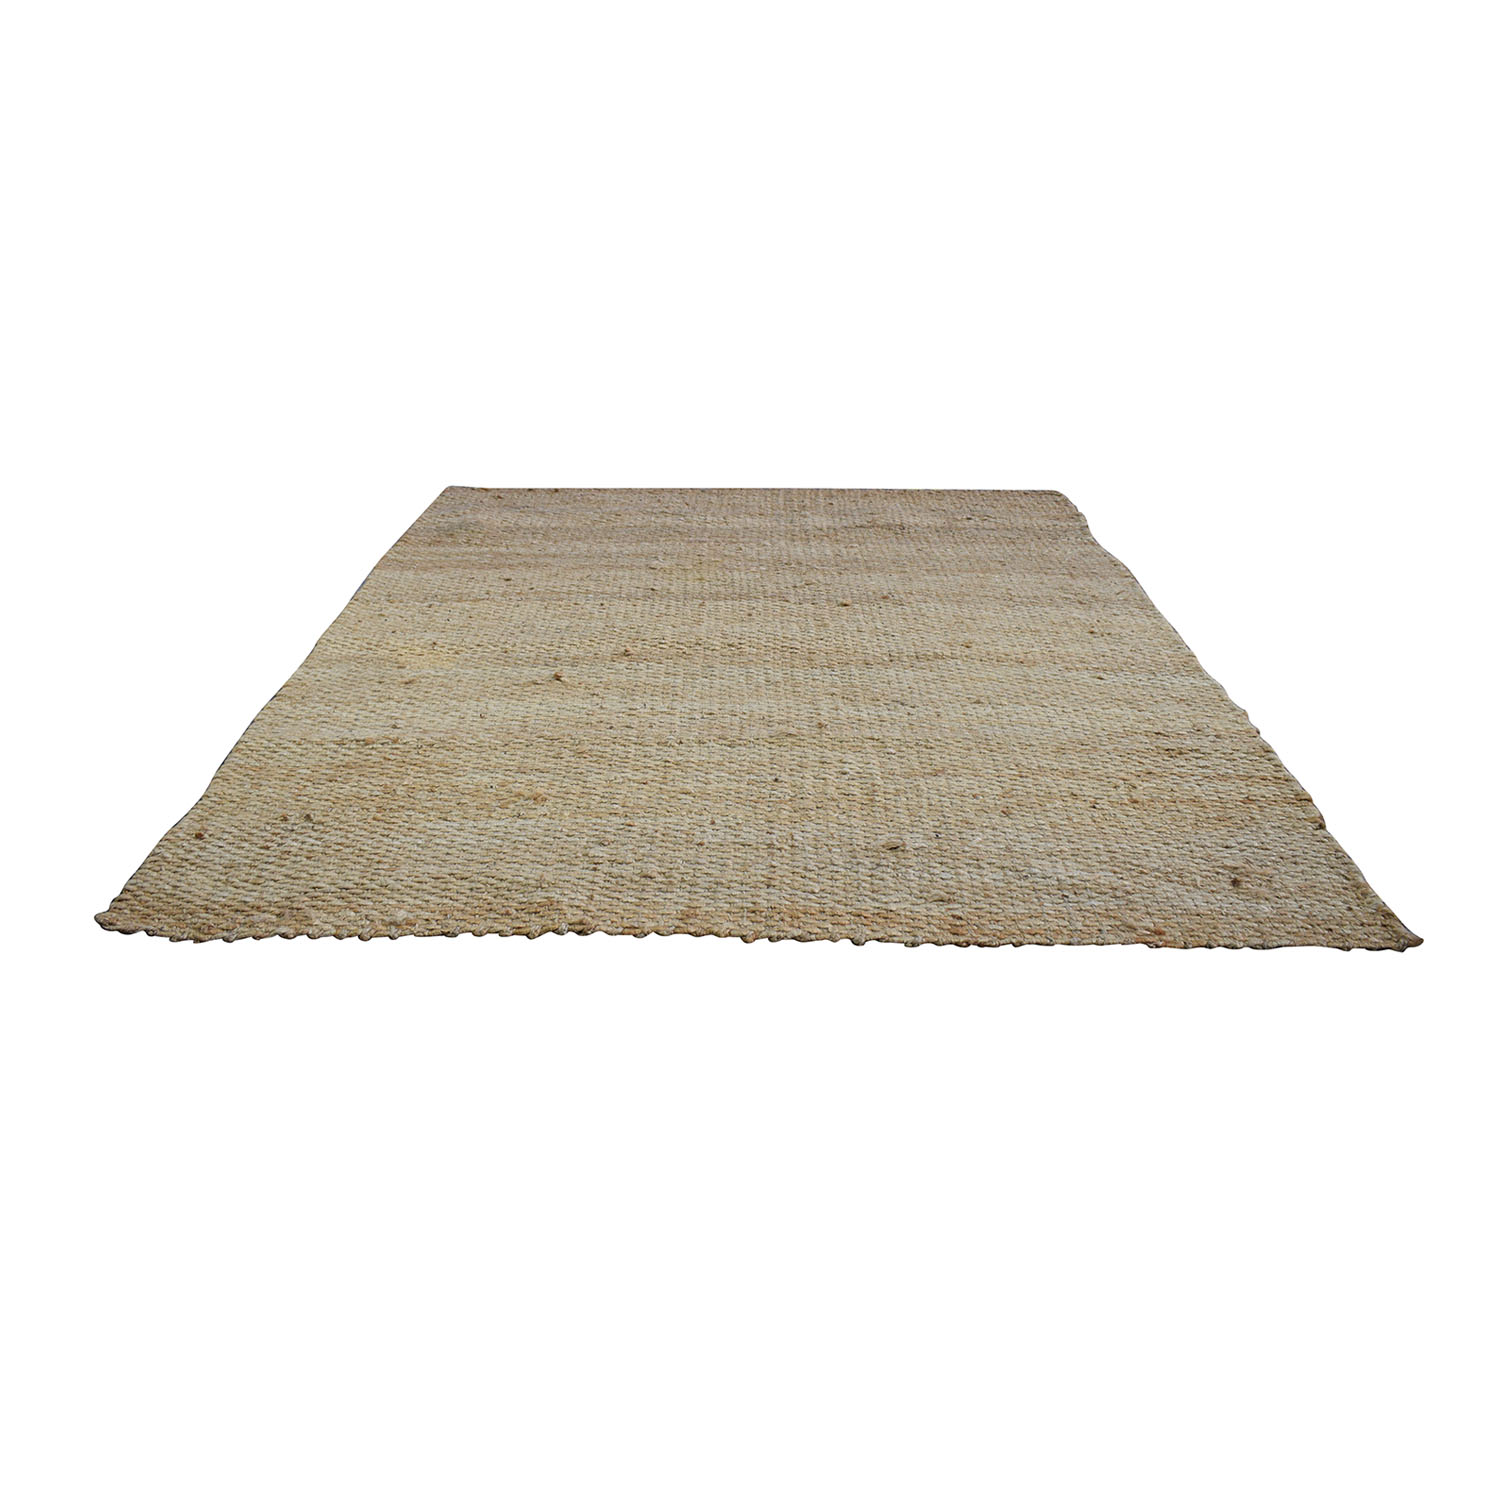 nuLOOM nuLoom Natural Jute Hand-Woven Chunky Rug used